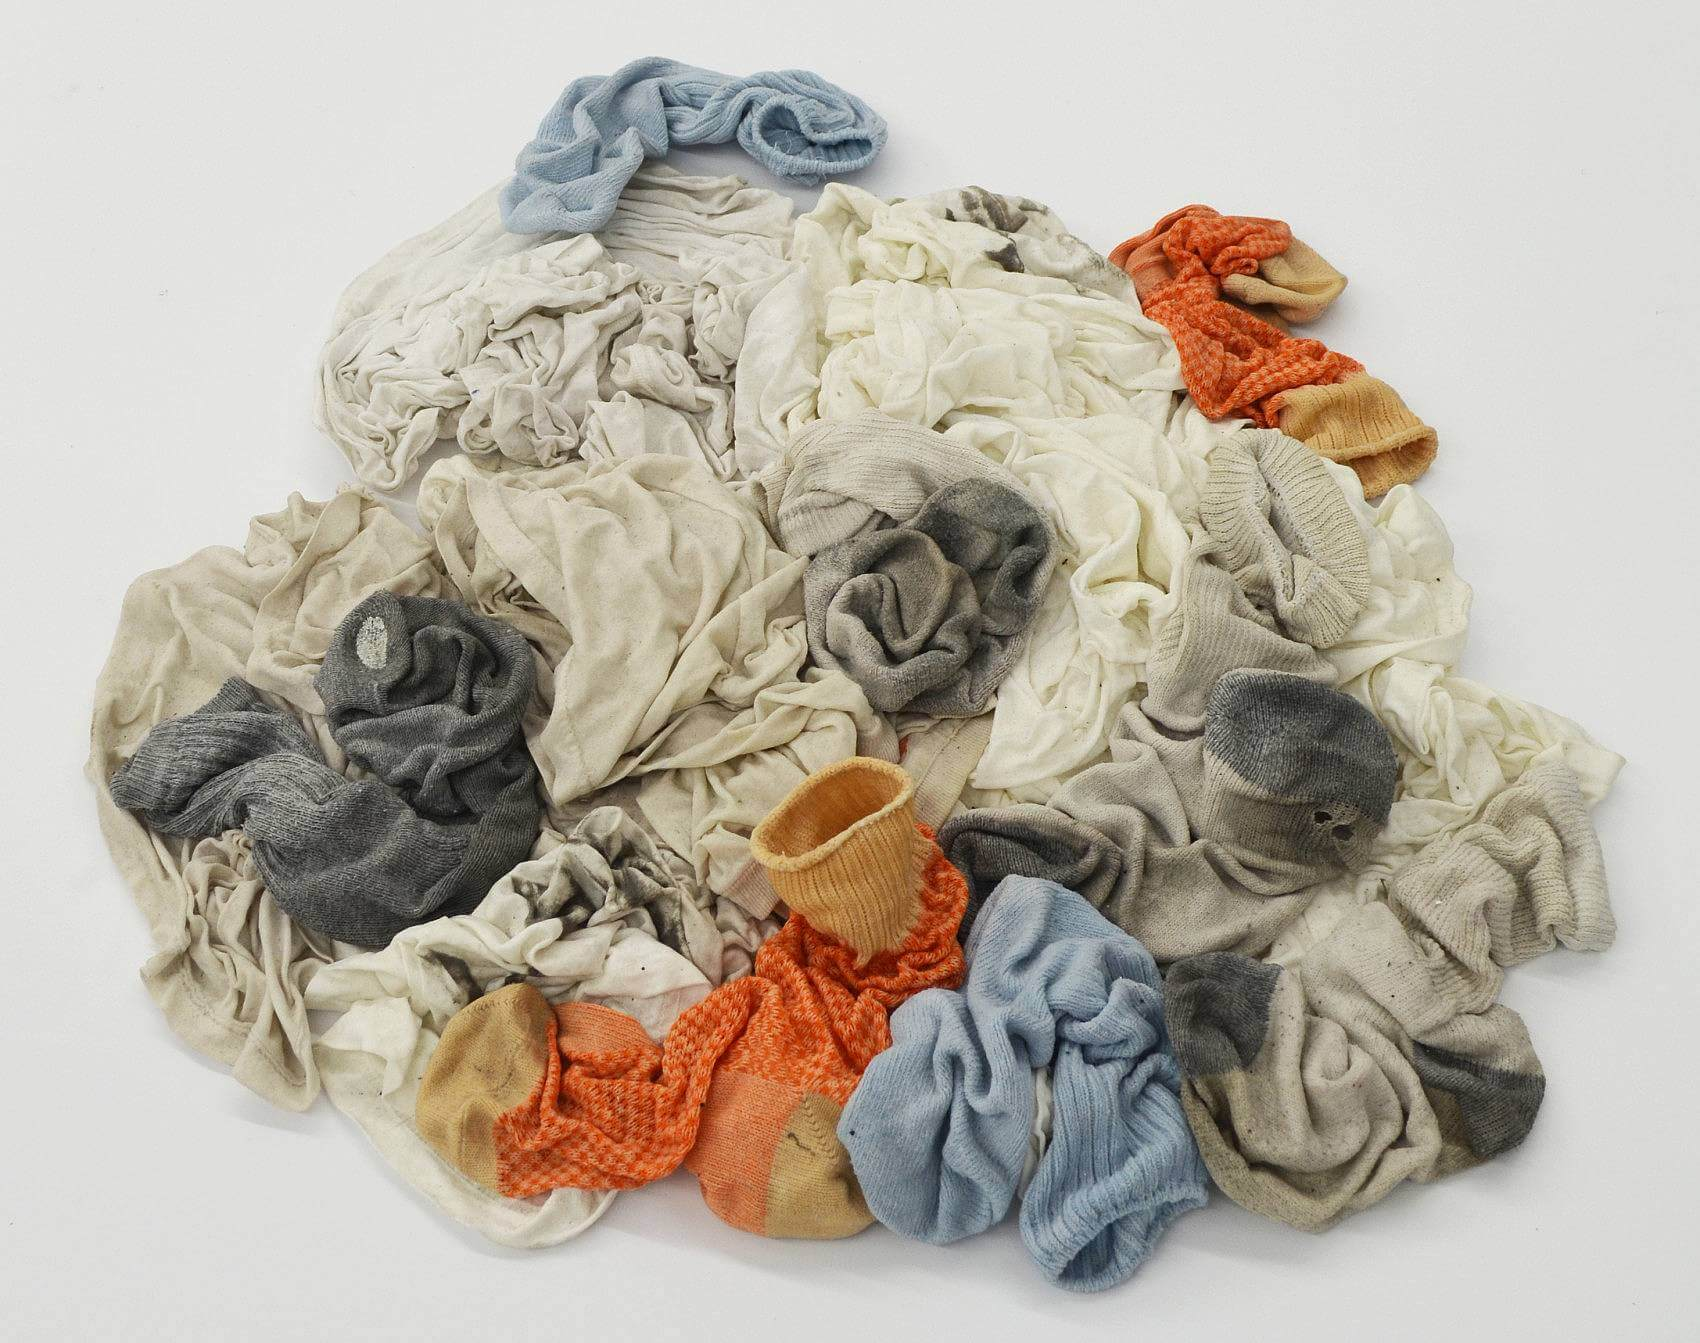 artist of the week lauren taylor lvl3 media clothes pile